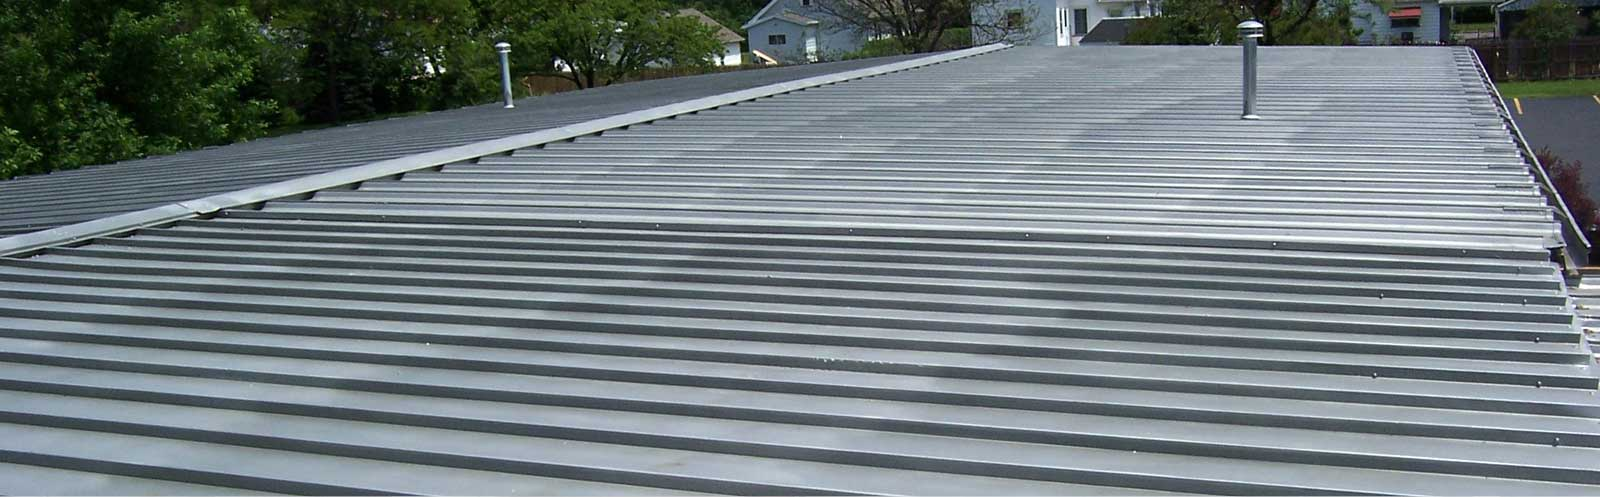 Roof Coatings Oh Insulation And Coating Service